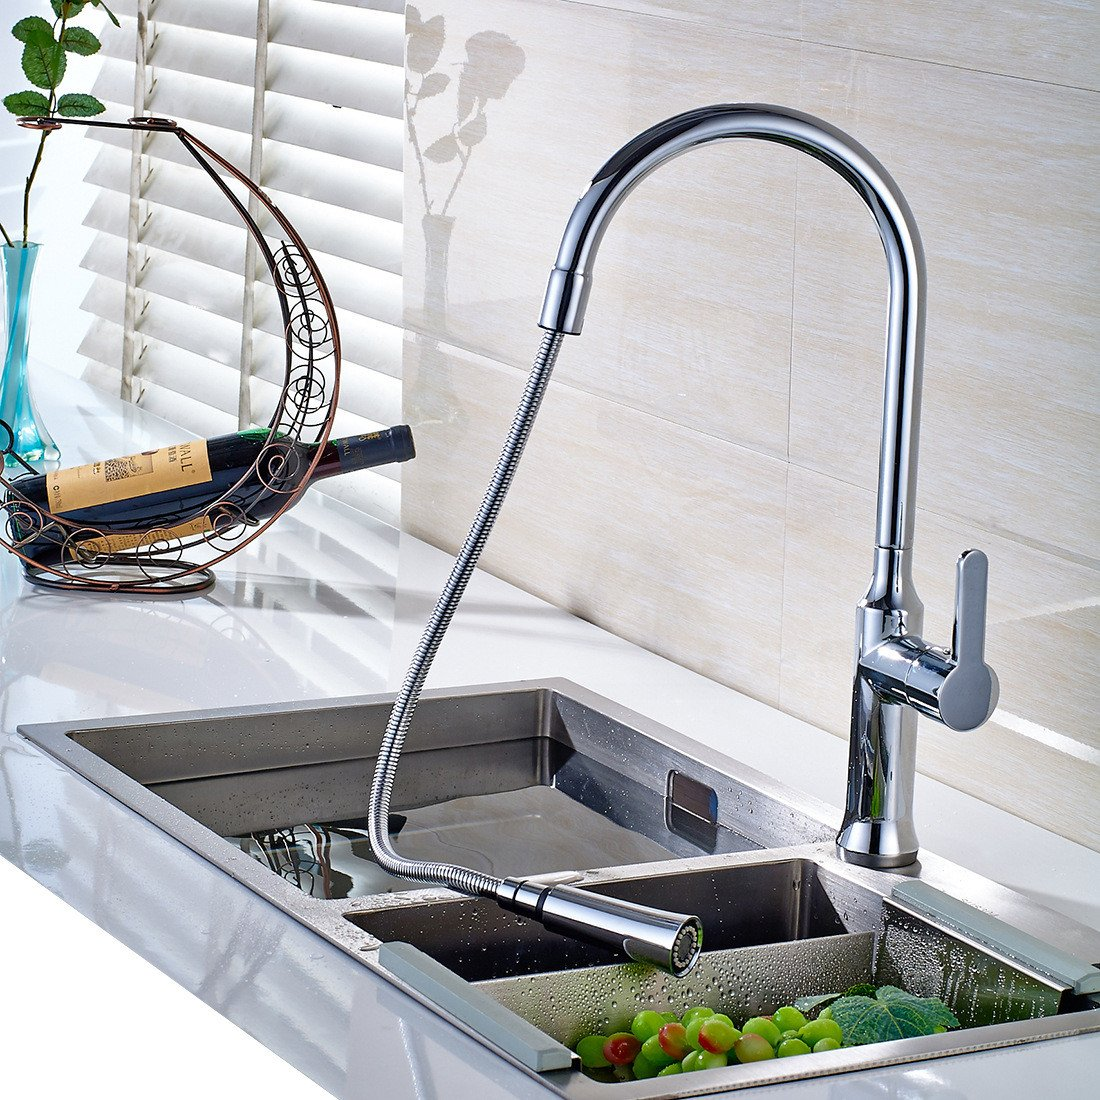 17 Lpophy Bathroom Sink Mixer Taps Faucet Bath Waterfall Cold and Hot Water Tap for Washroom Bathroom and Kitchen Chrome Plating 1